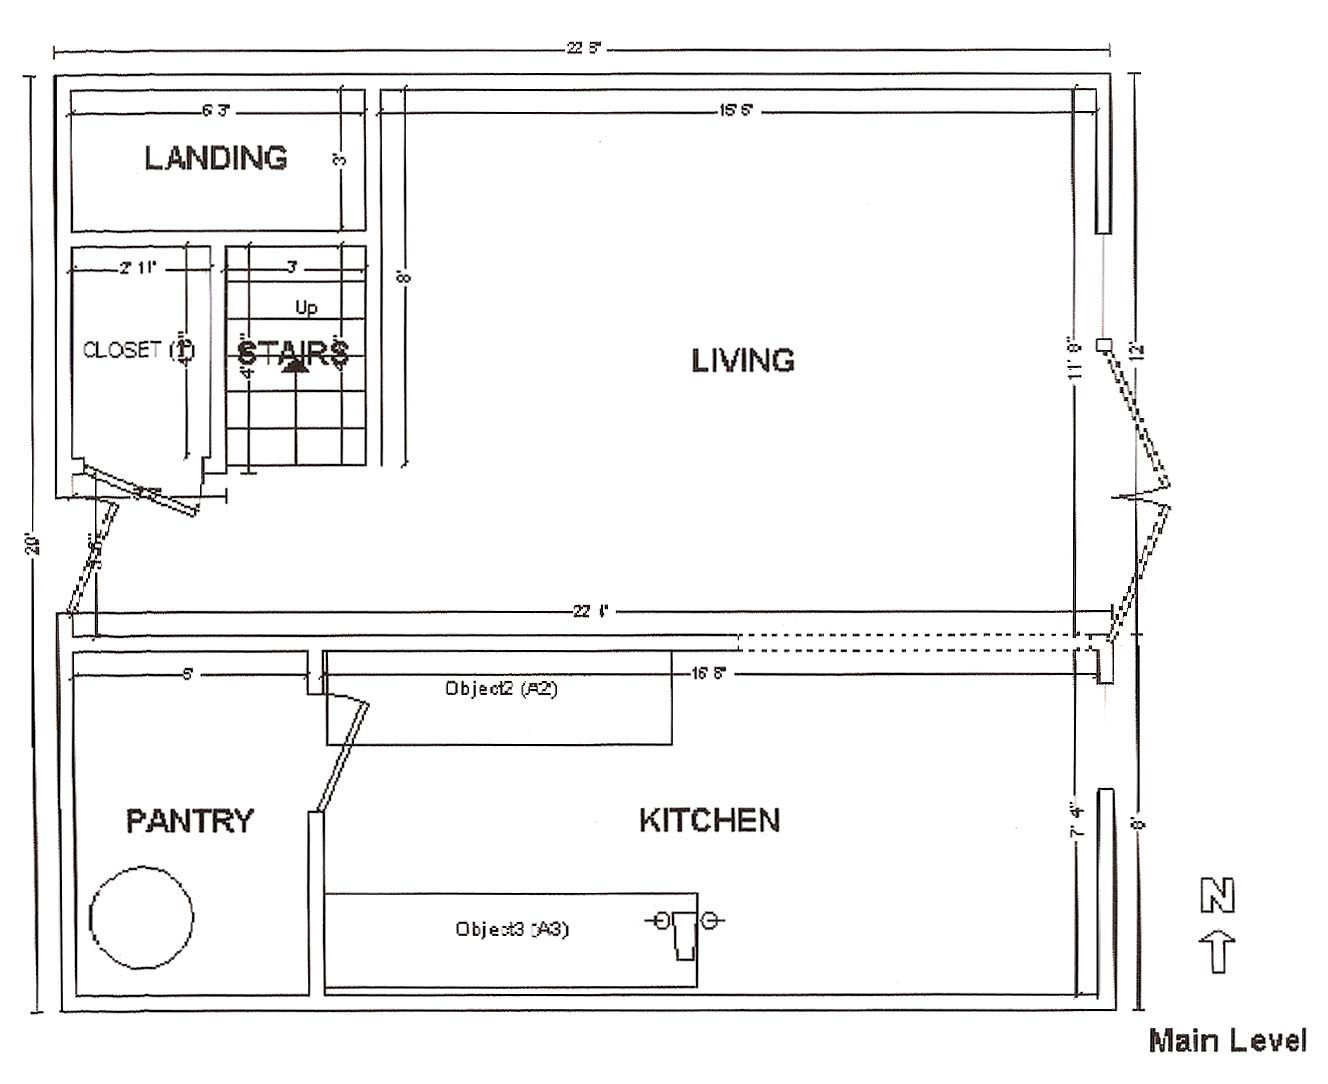 Maps and floor plans commonland community for Main level floor plans